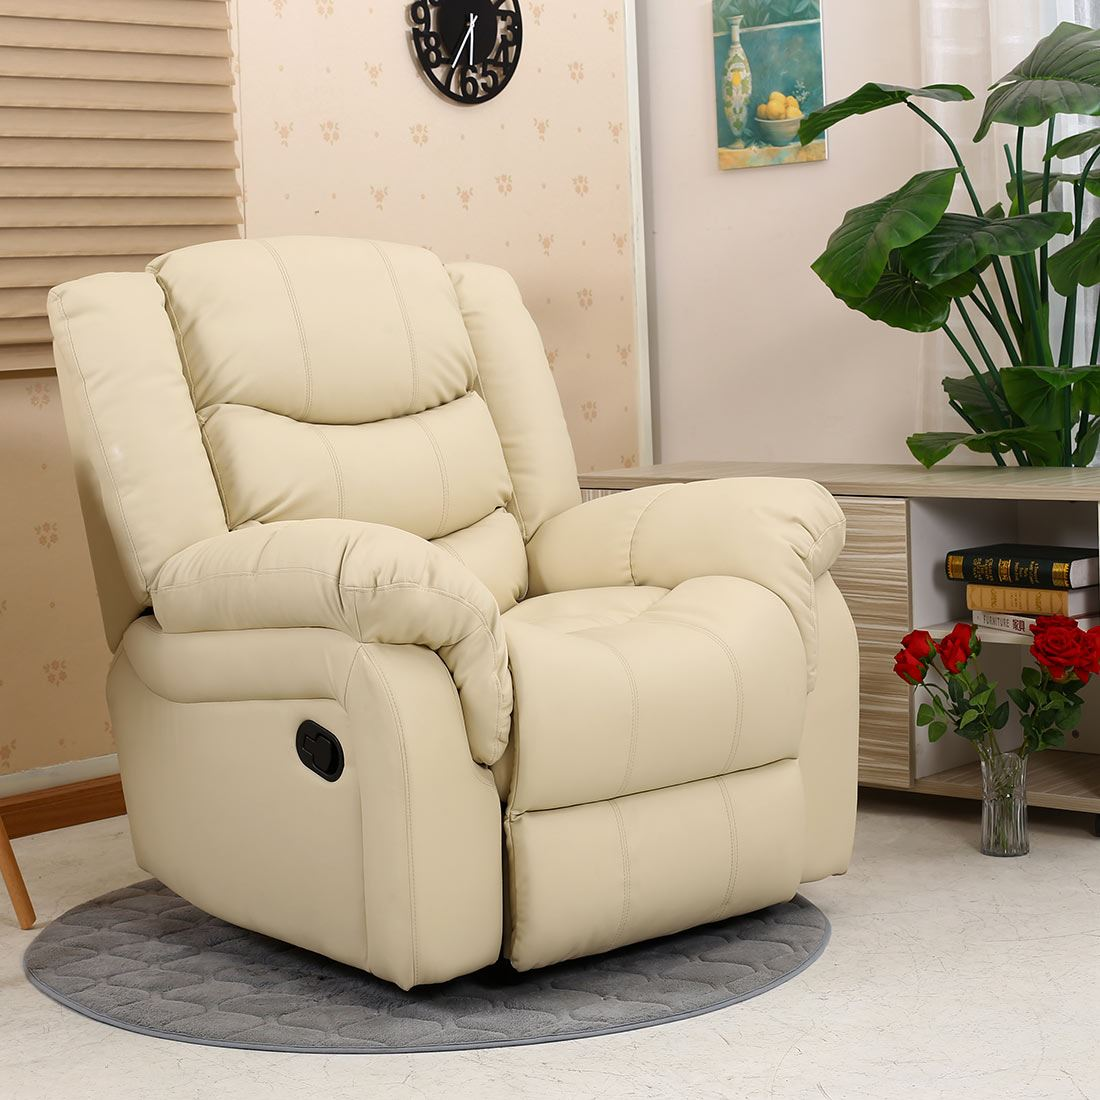 Leather Sofa Nourishing Cream: SEATTLE CREAM LEATHER RECLINER ARMCHAIR SOFA HOME LOUNGE